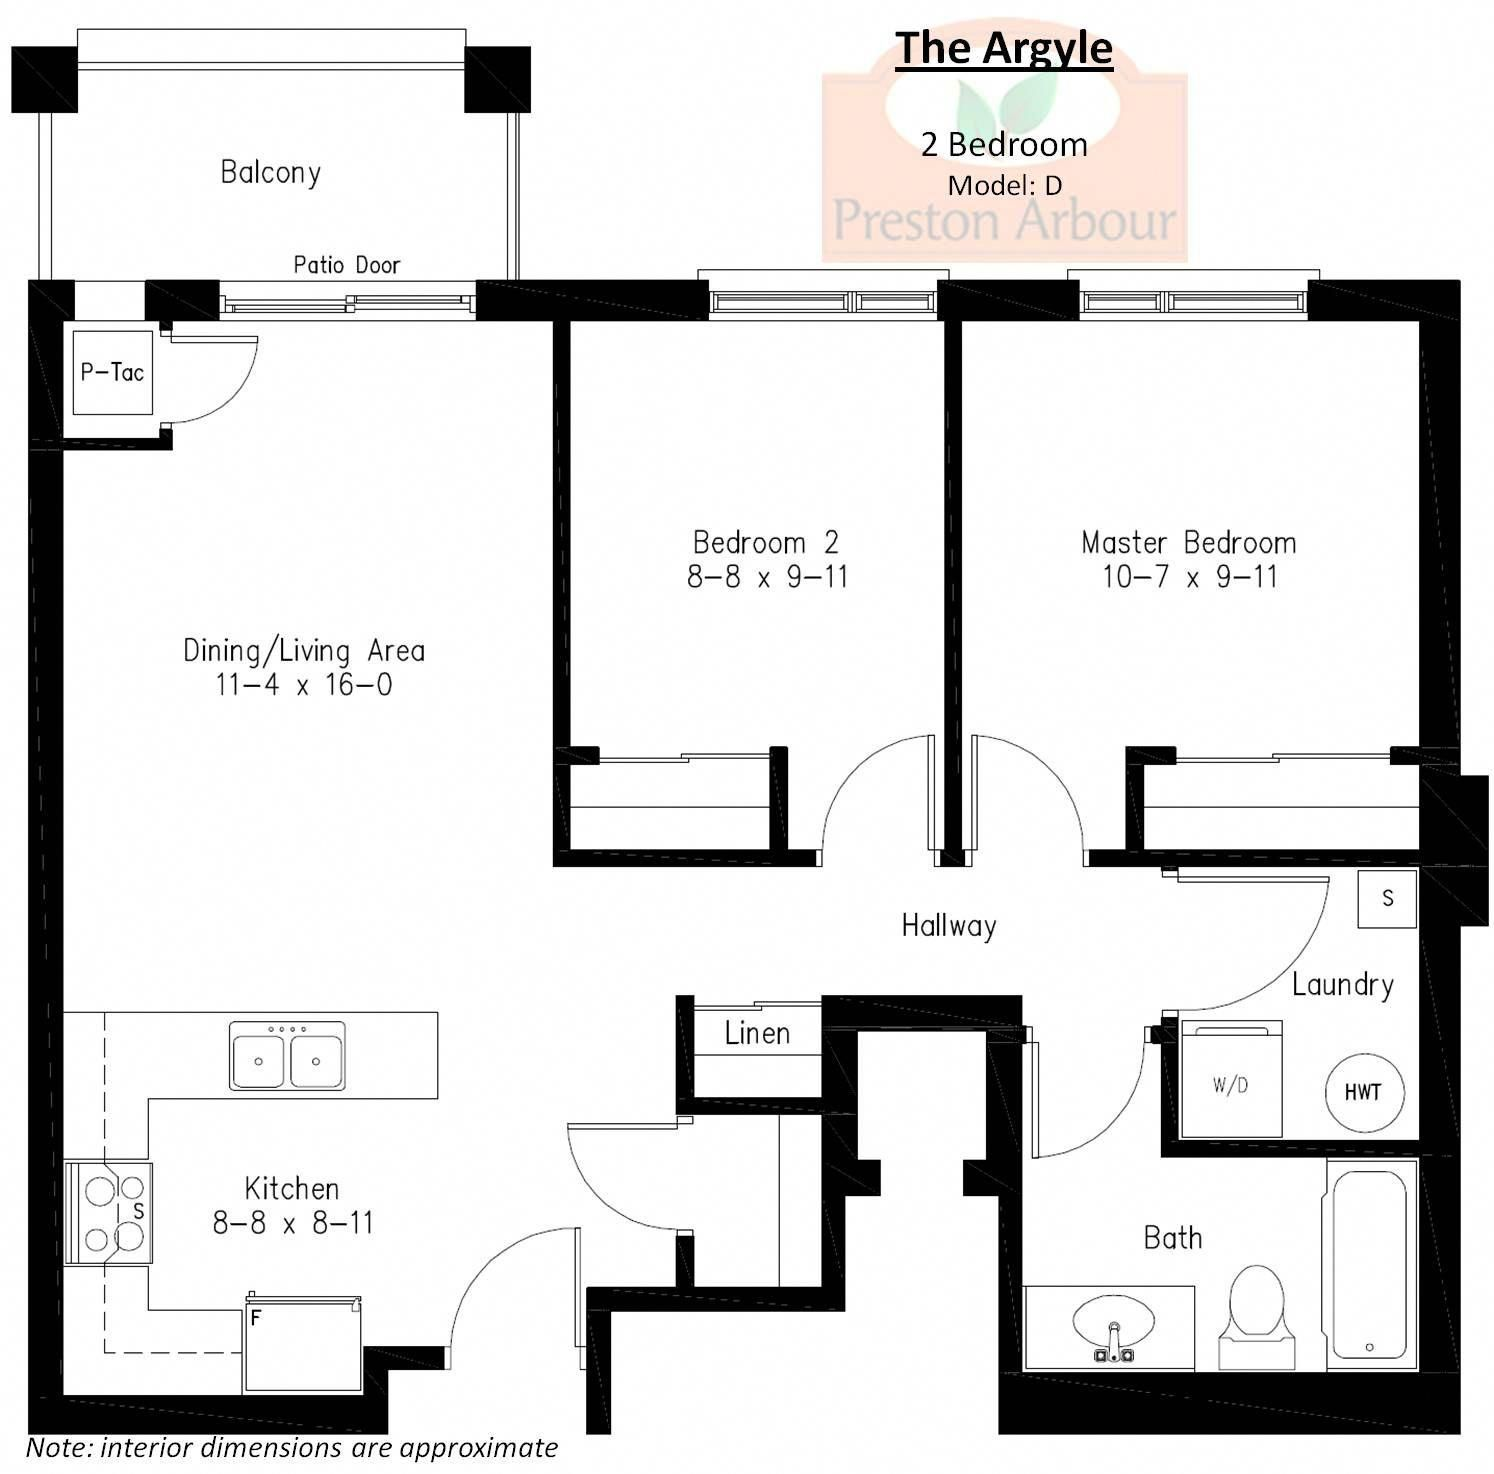 Photos Floor Plan Software Draw Plans With Acquire Home Planner Free House Interior Design Floor Plan Design Home Design Floor Plans House Plans Online